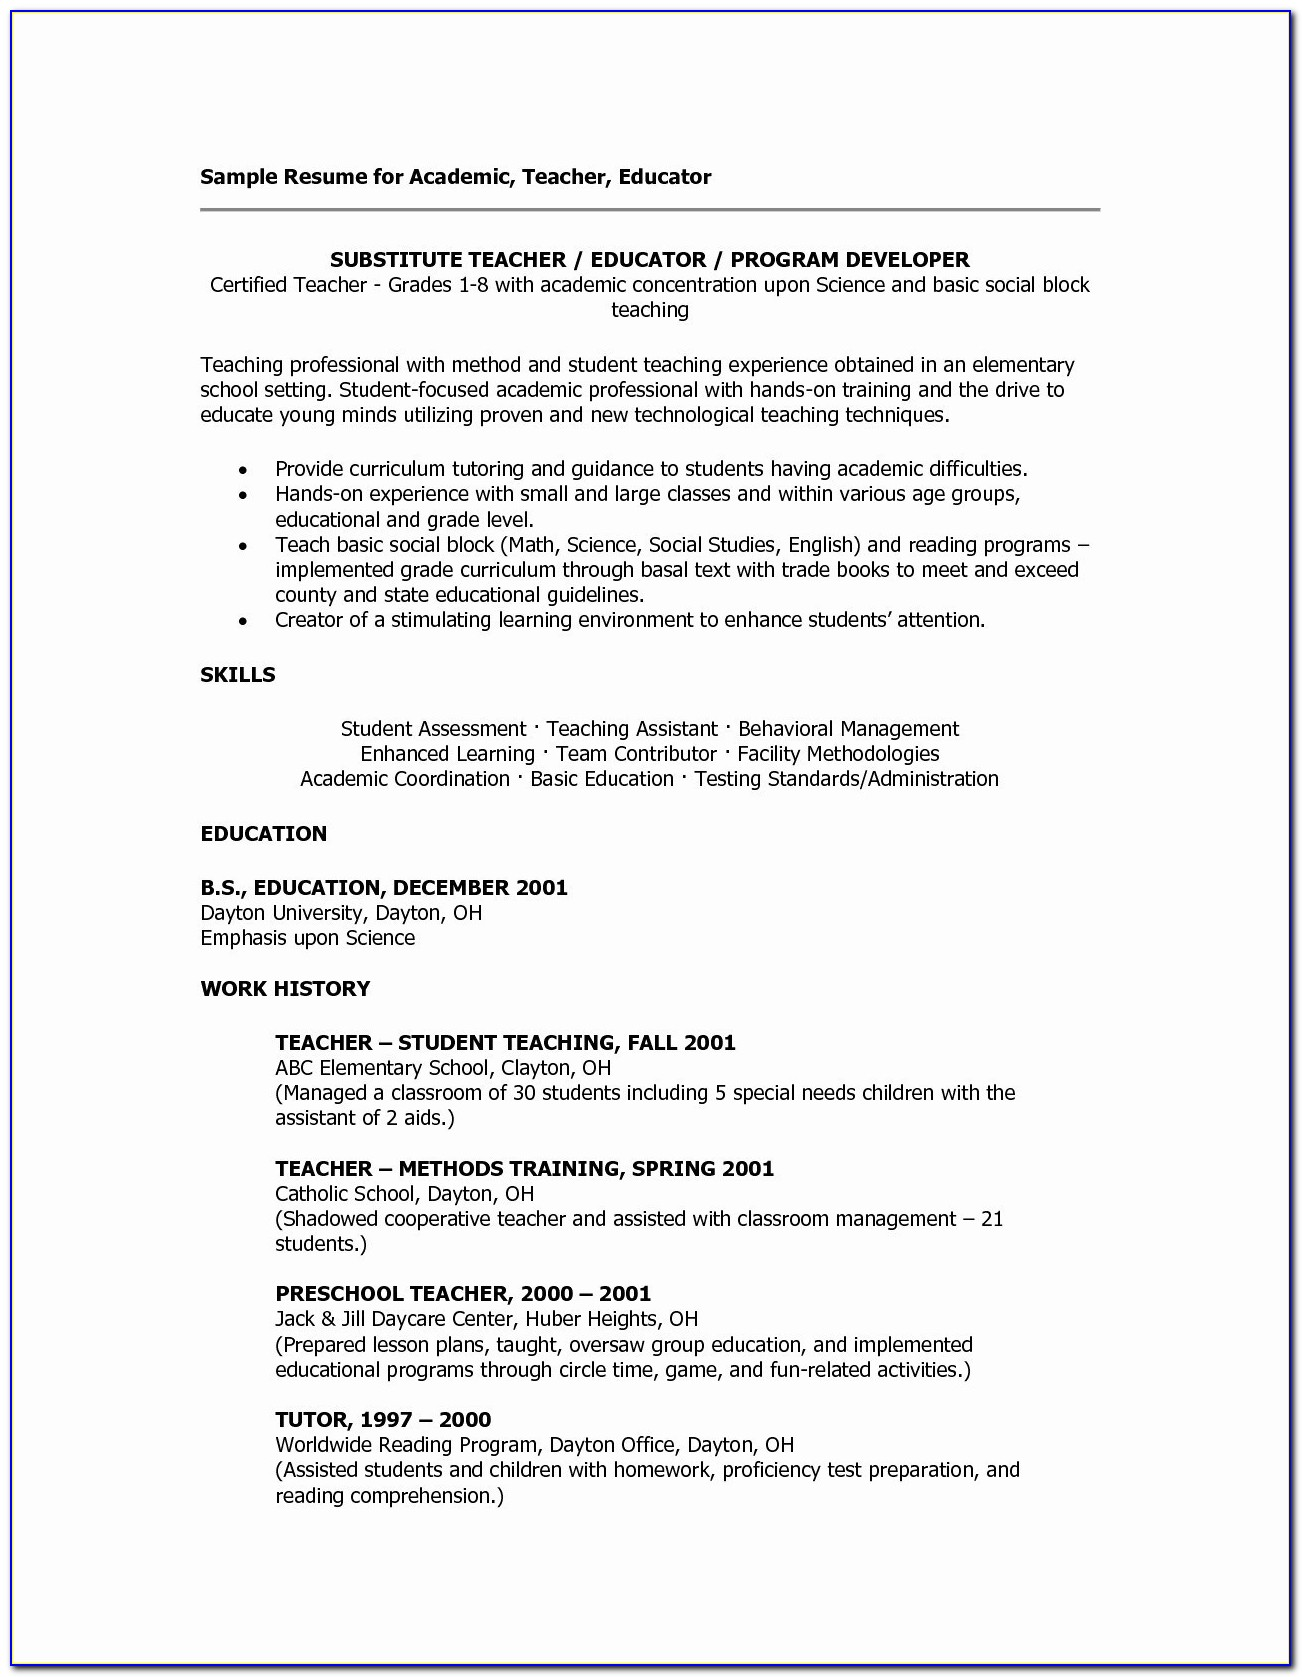 Monster Resume Writing Discount Code